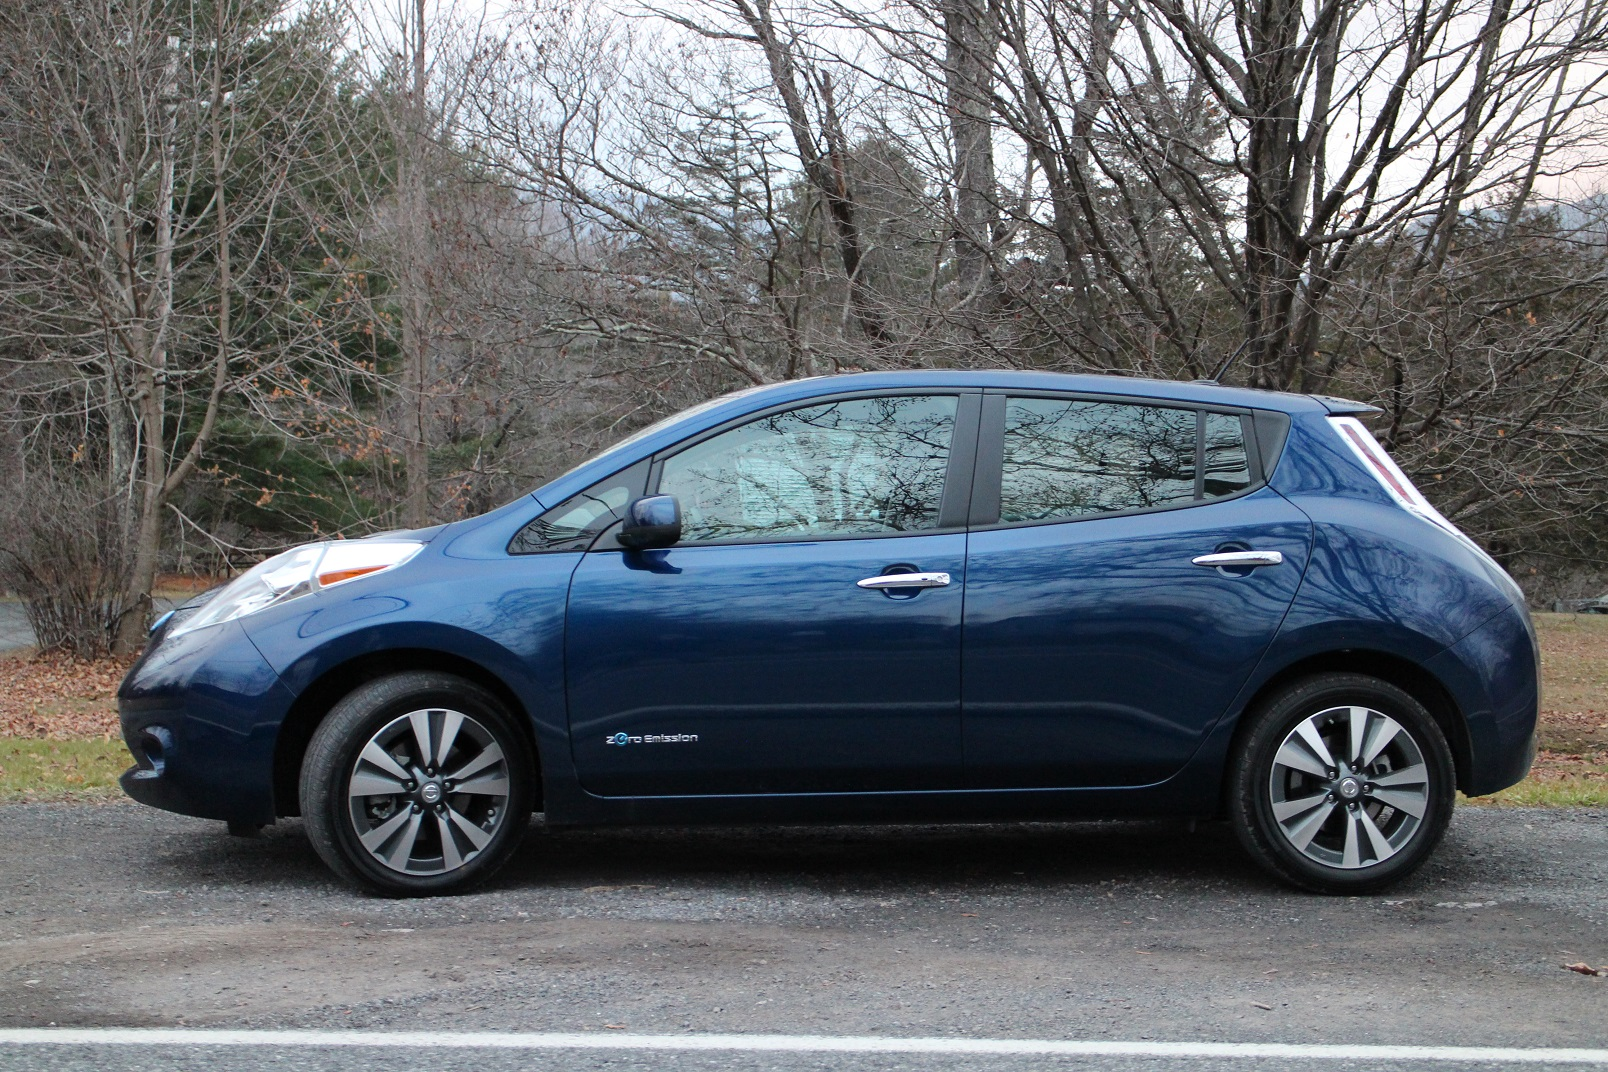 2016 nissan leaf group buy in montreal signs up 2 800 for low price on electric car